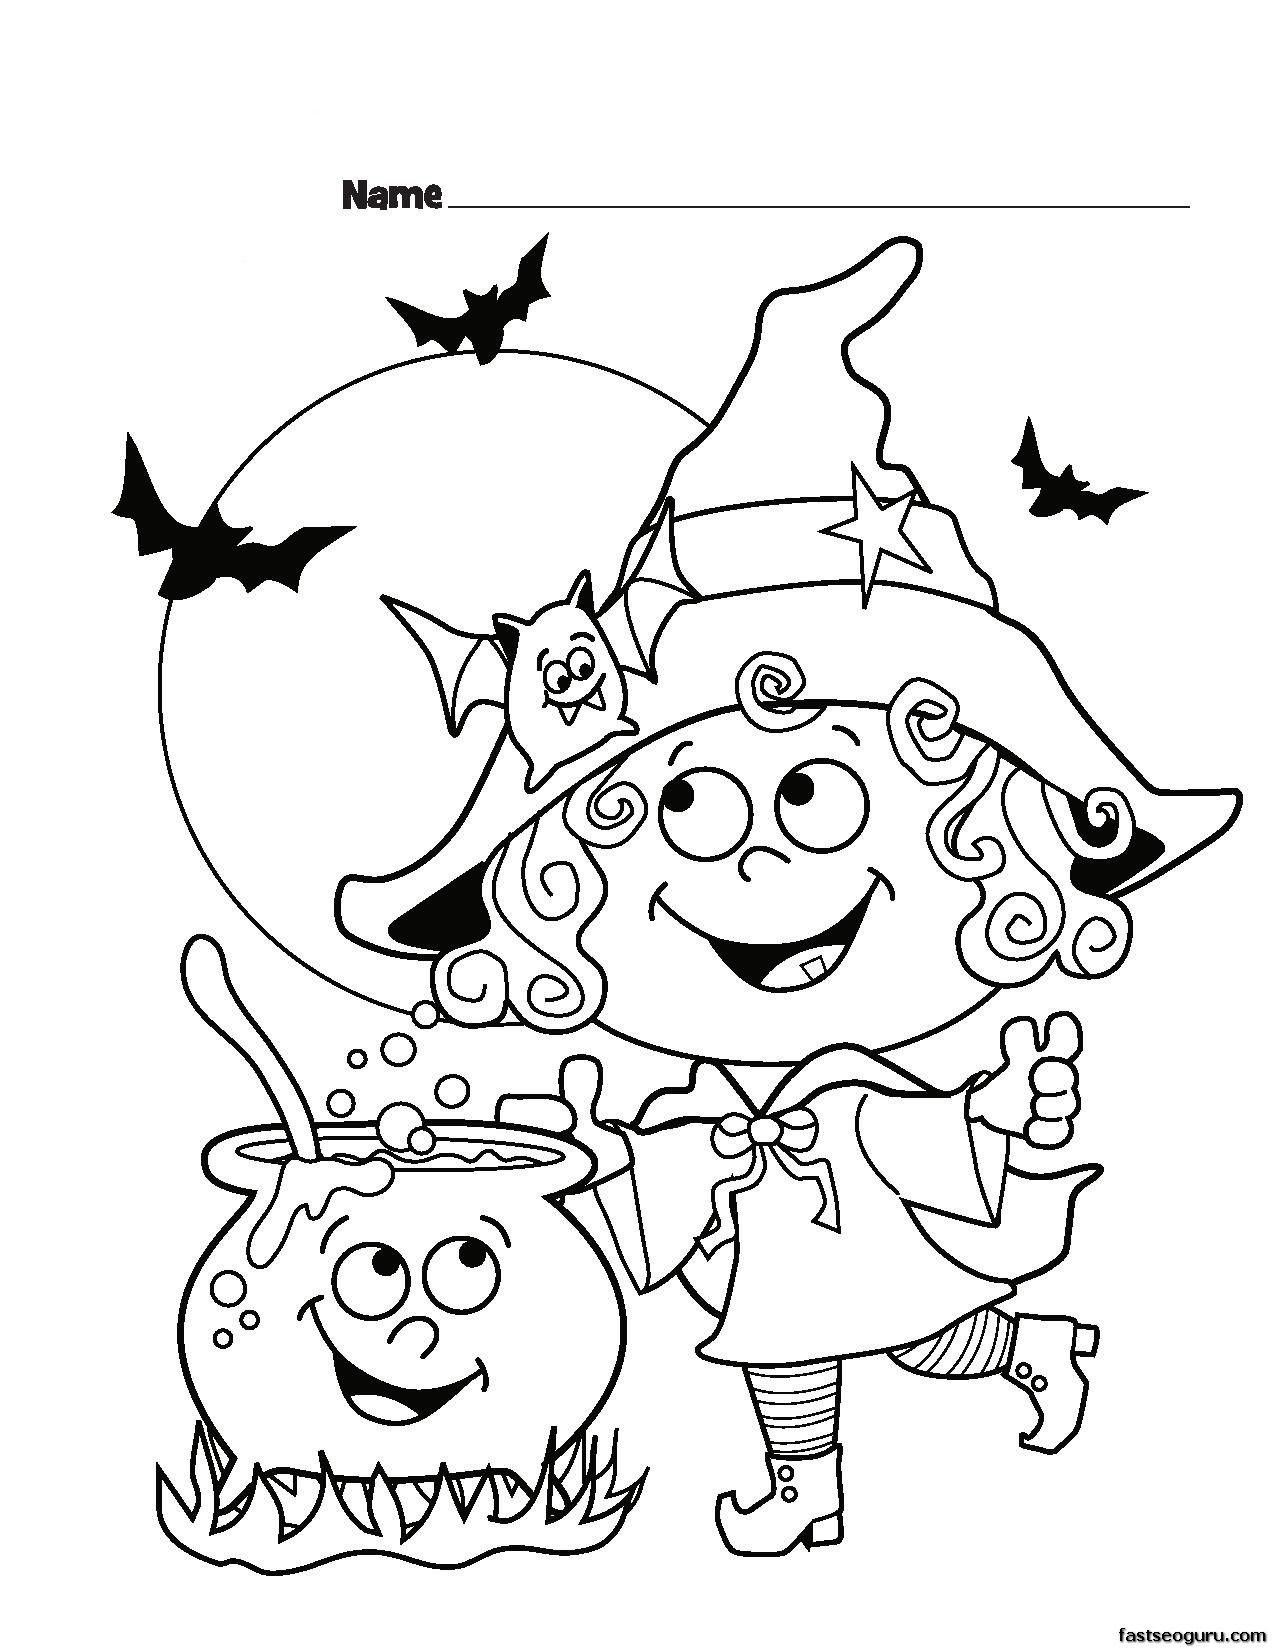 Halloween Coloring Pages For Preschoolers Halloween Coloring